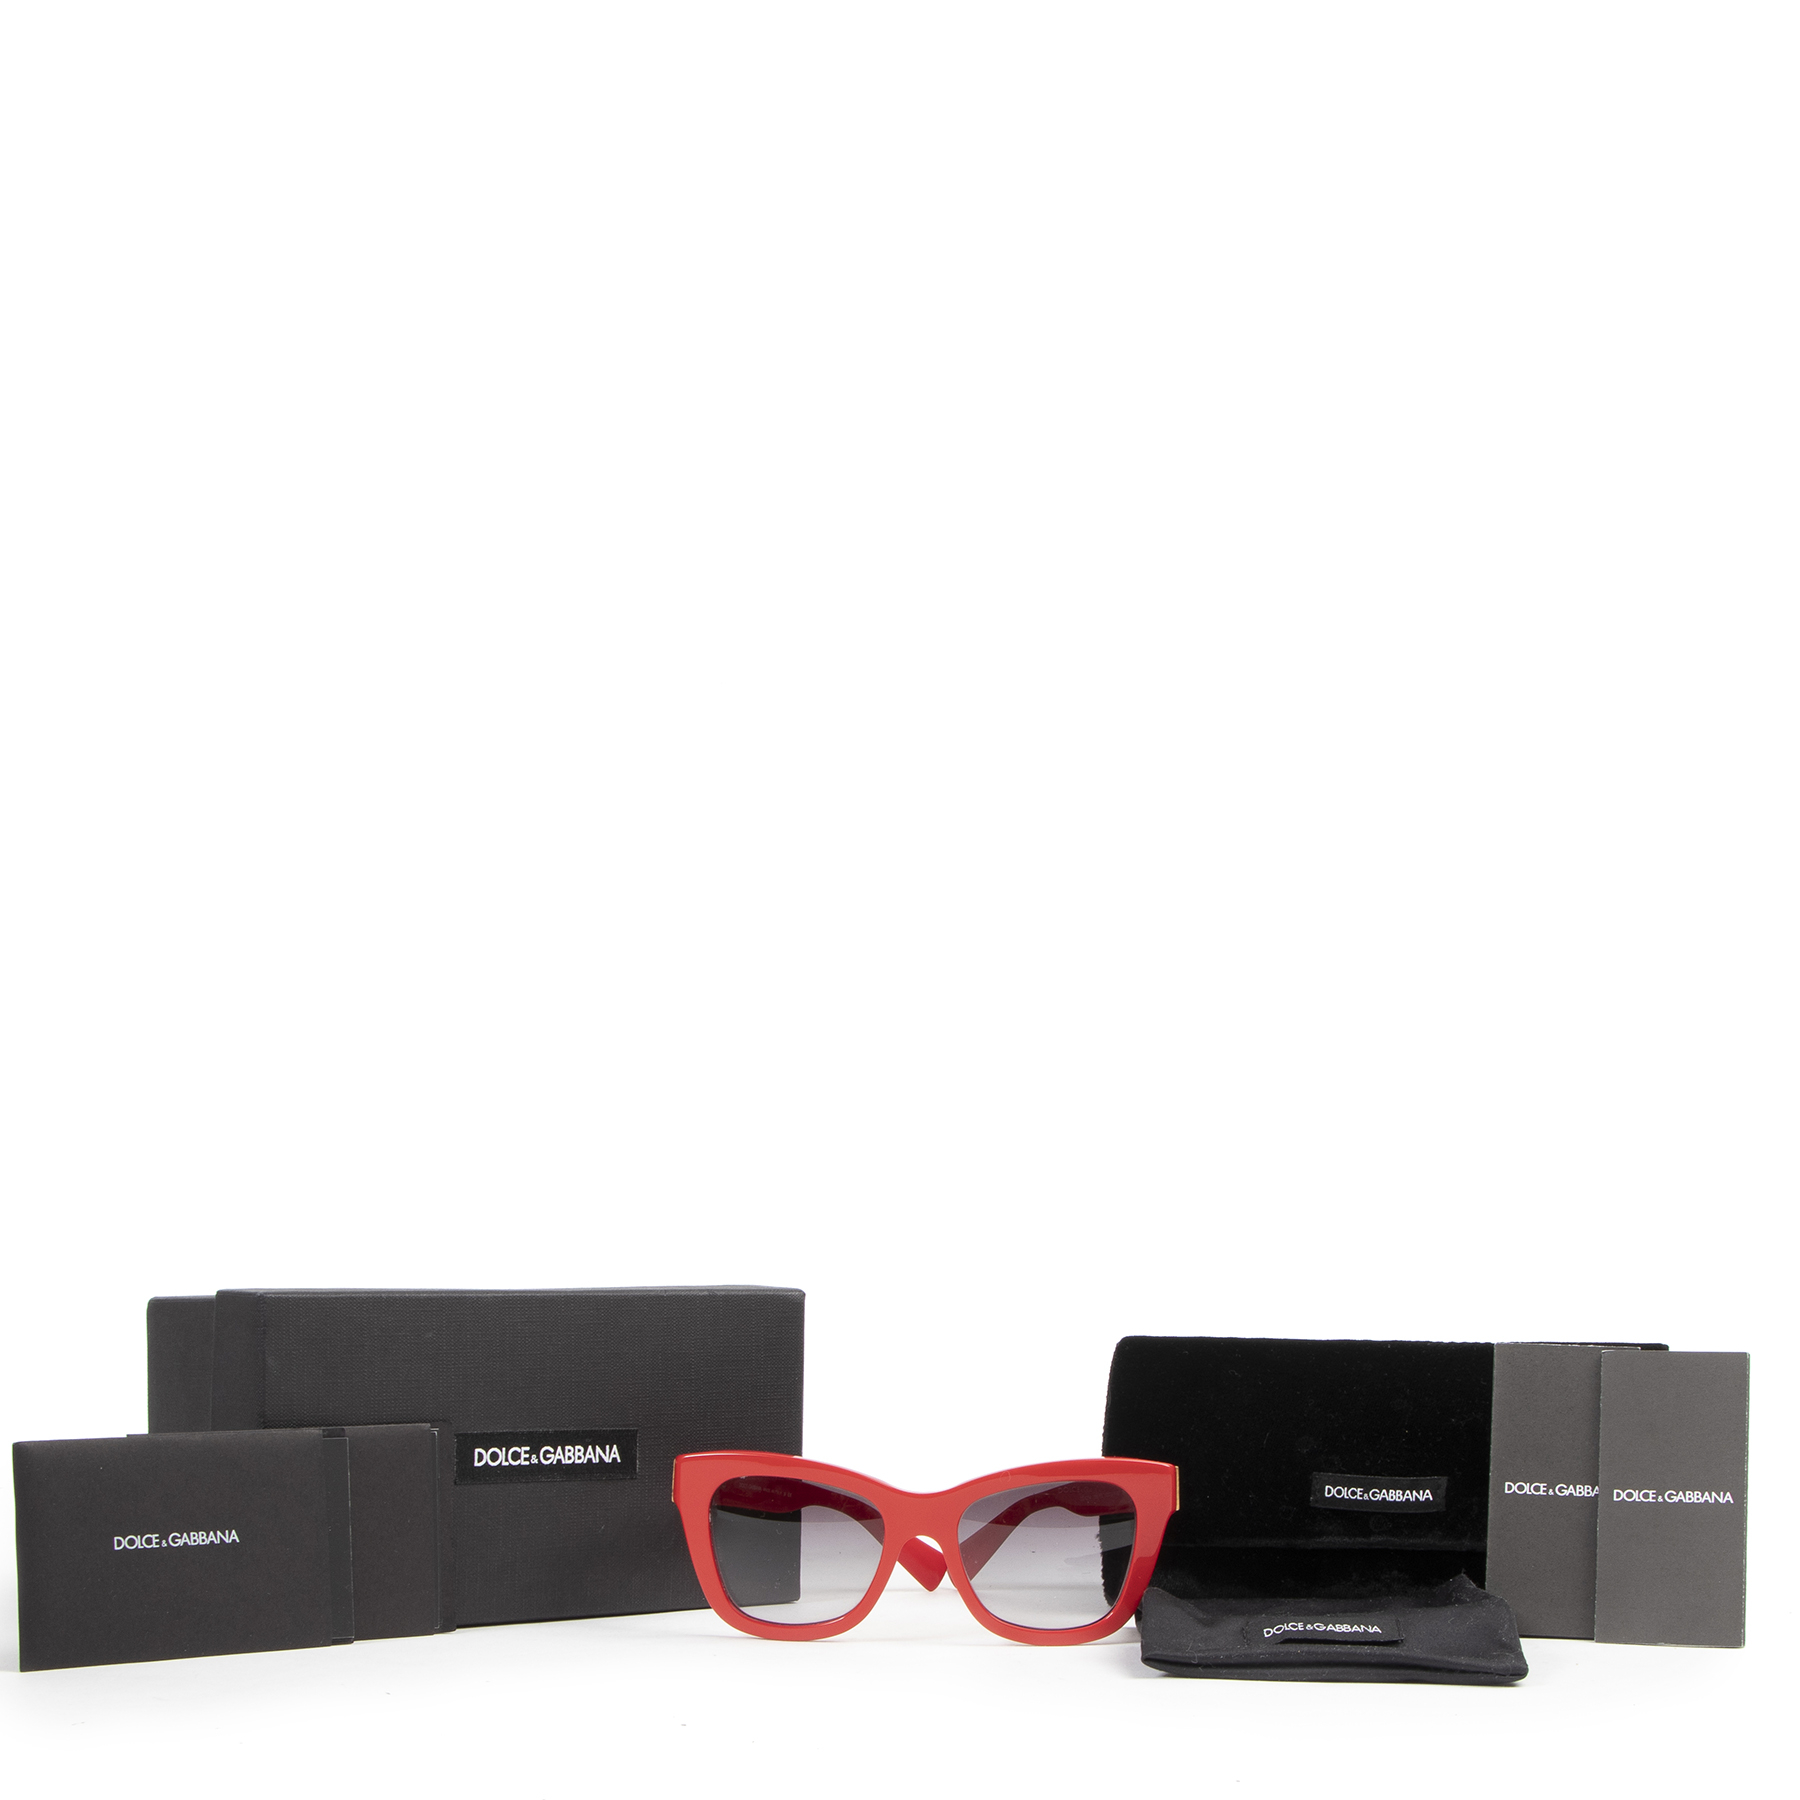 Dolce & Gabbana Red Sunglasses